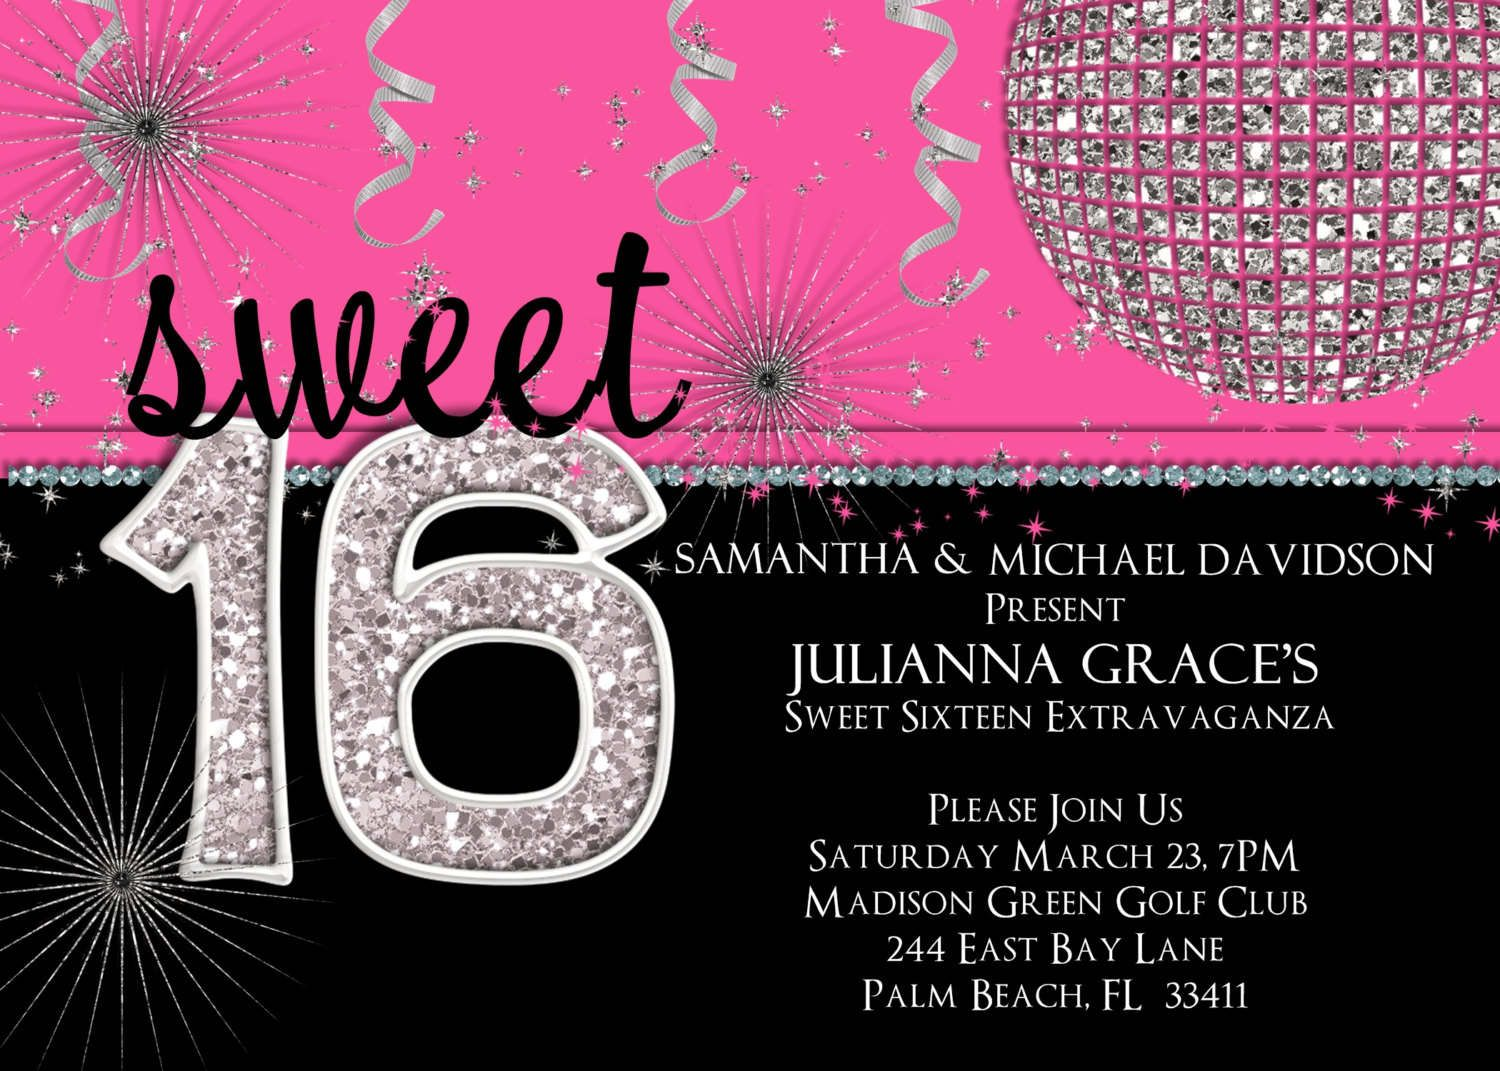 sweet sixteen invitations | Sweet 16 Invitation Templates with ...